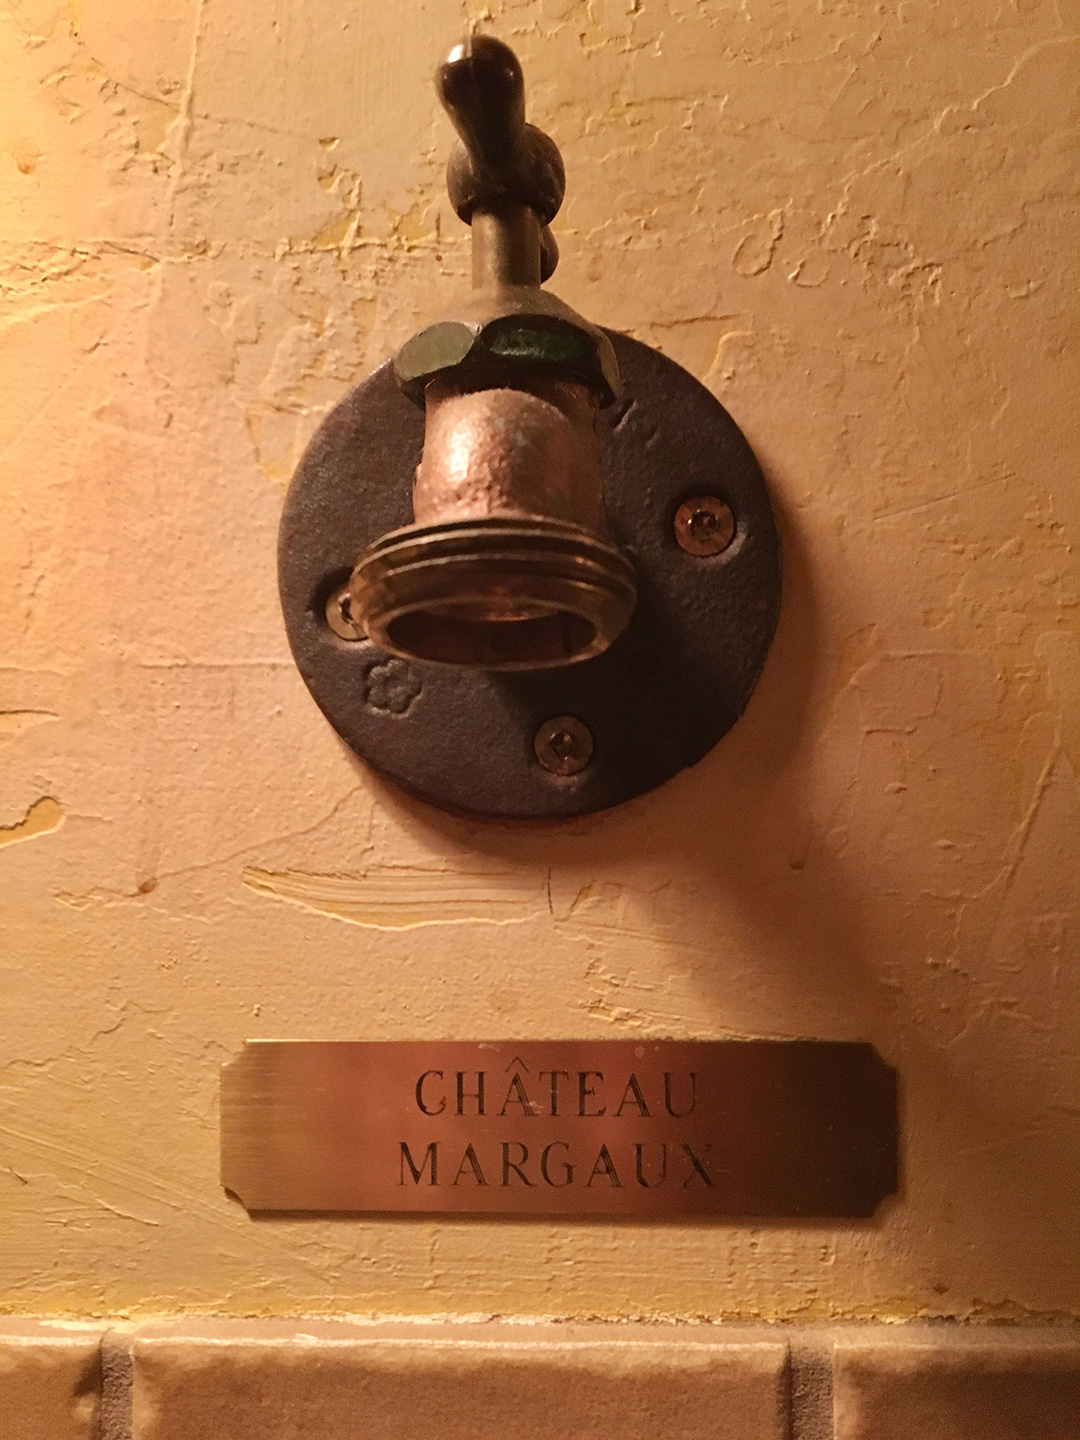 A tap with a brass plaque below is that says CHATEAU MARGAUX